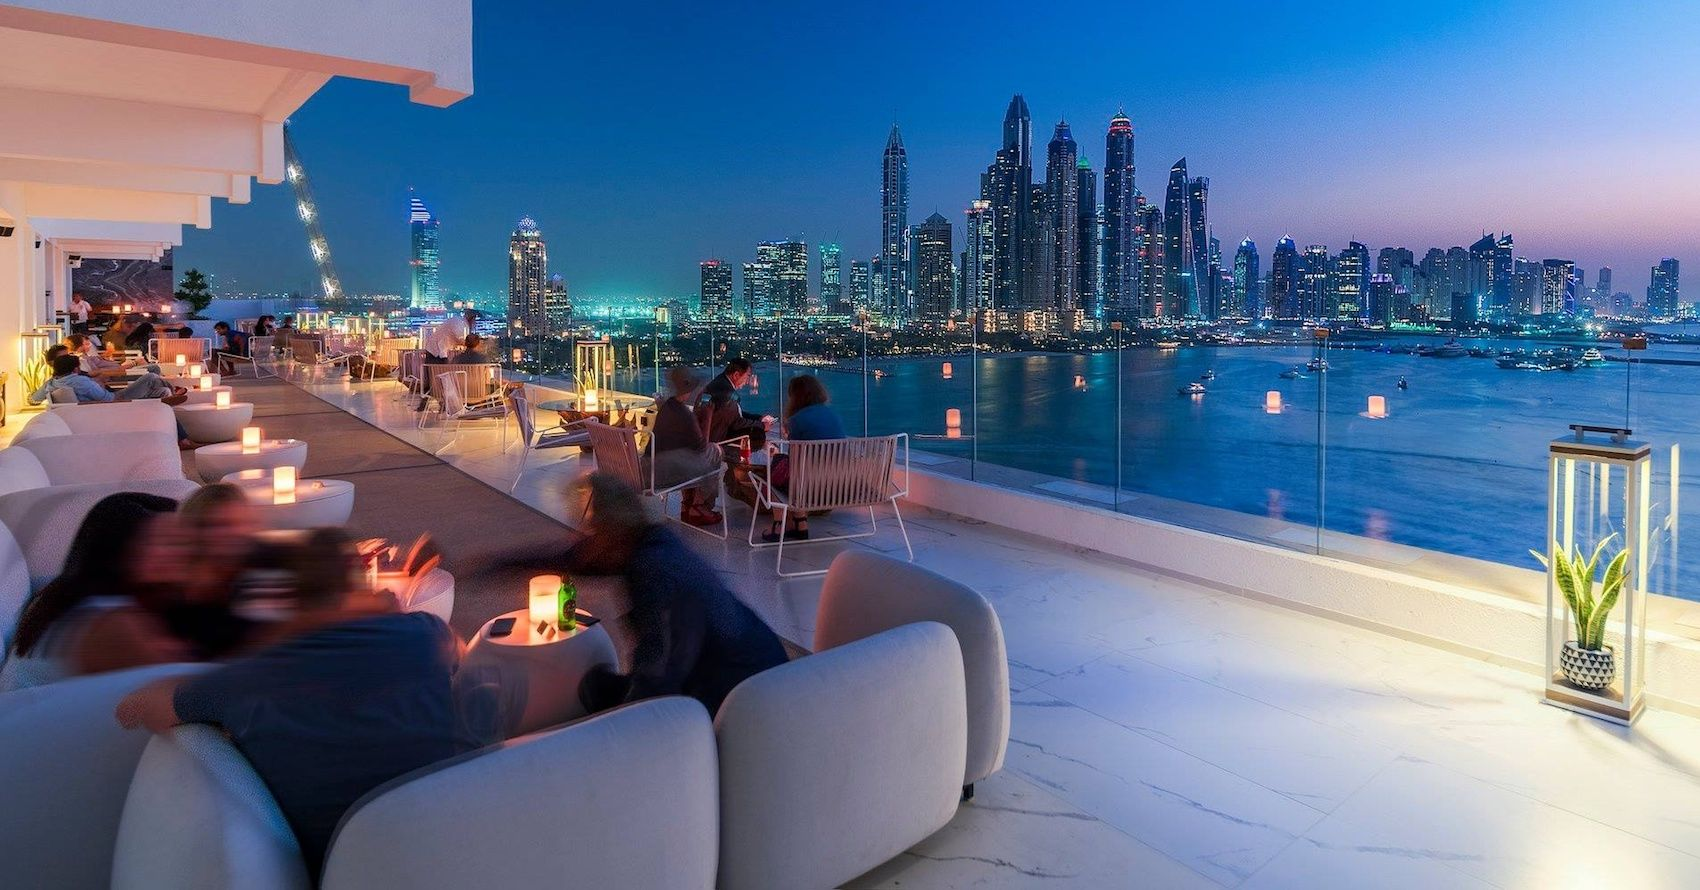 7 Outdoor Terraces In Dubai We Re Loving Right Now With Images